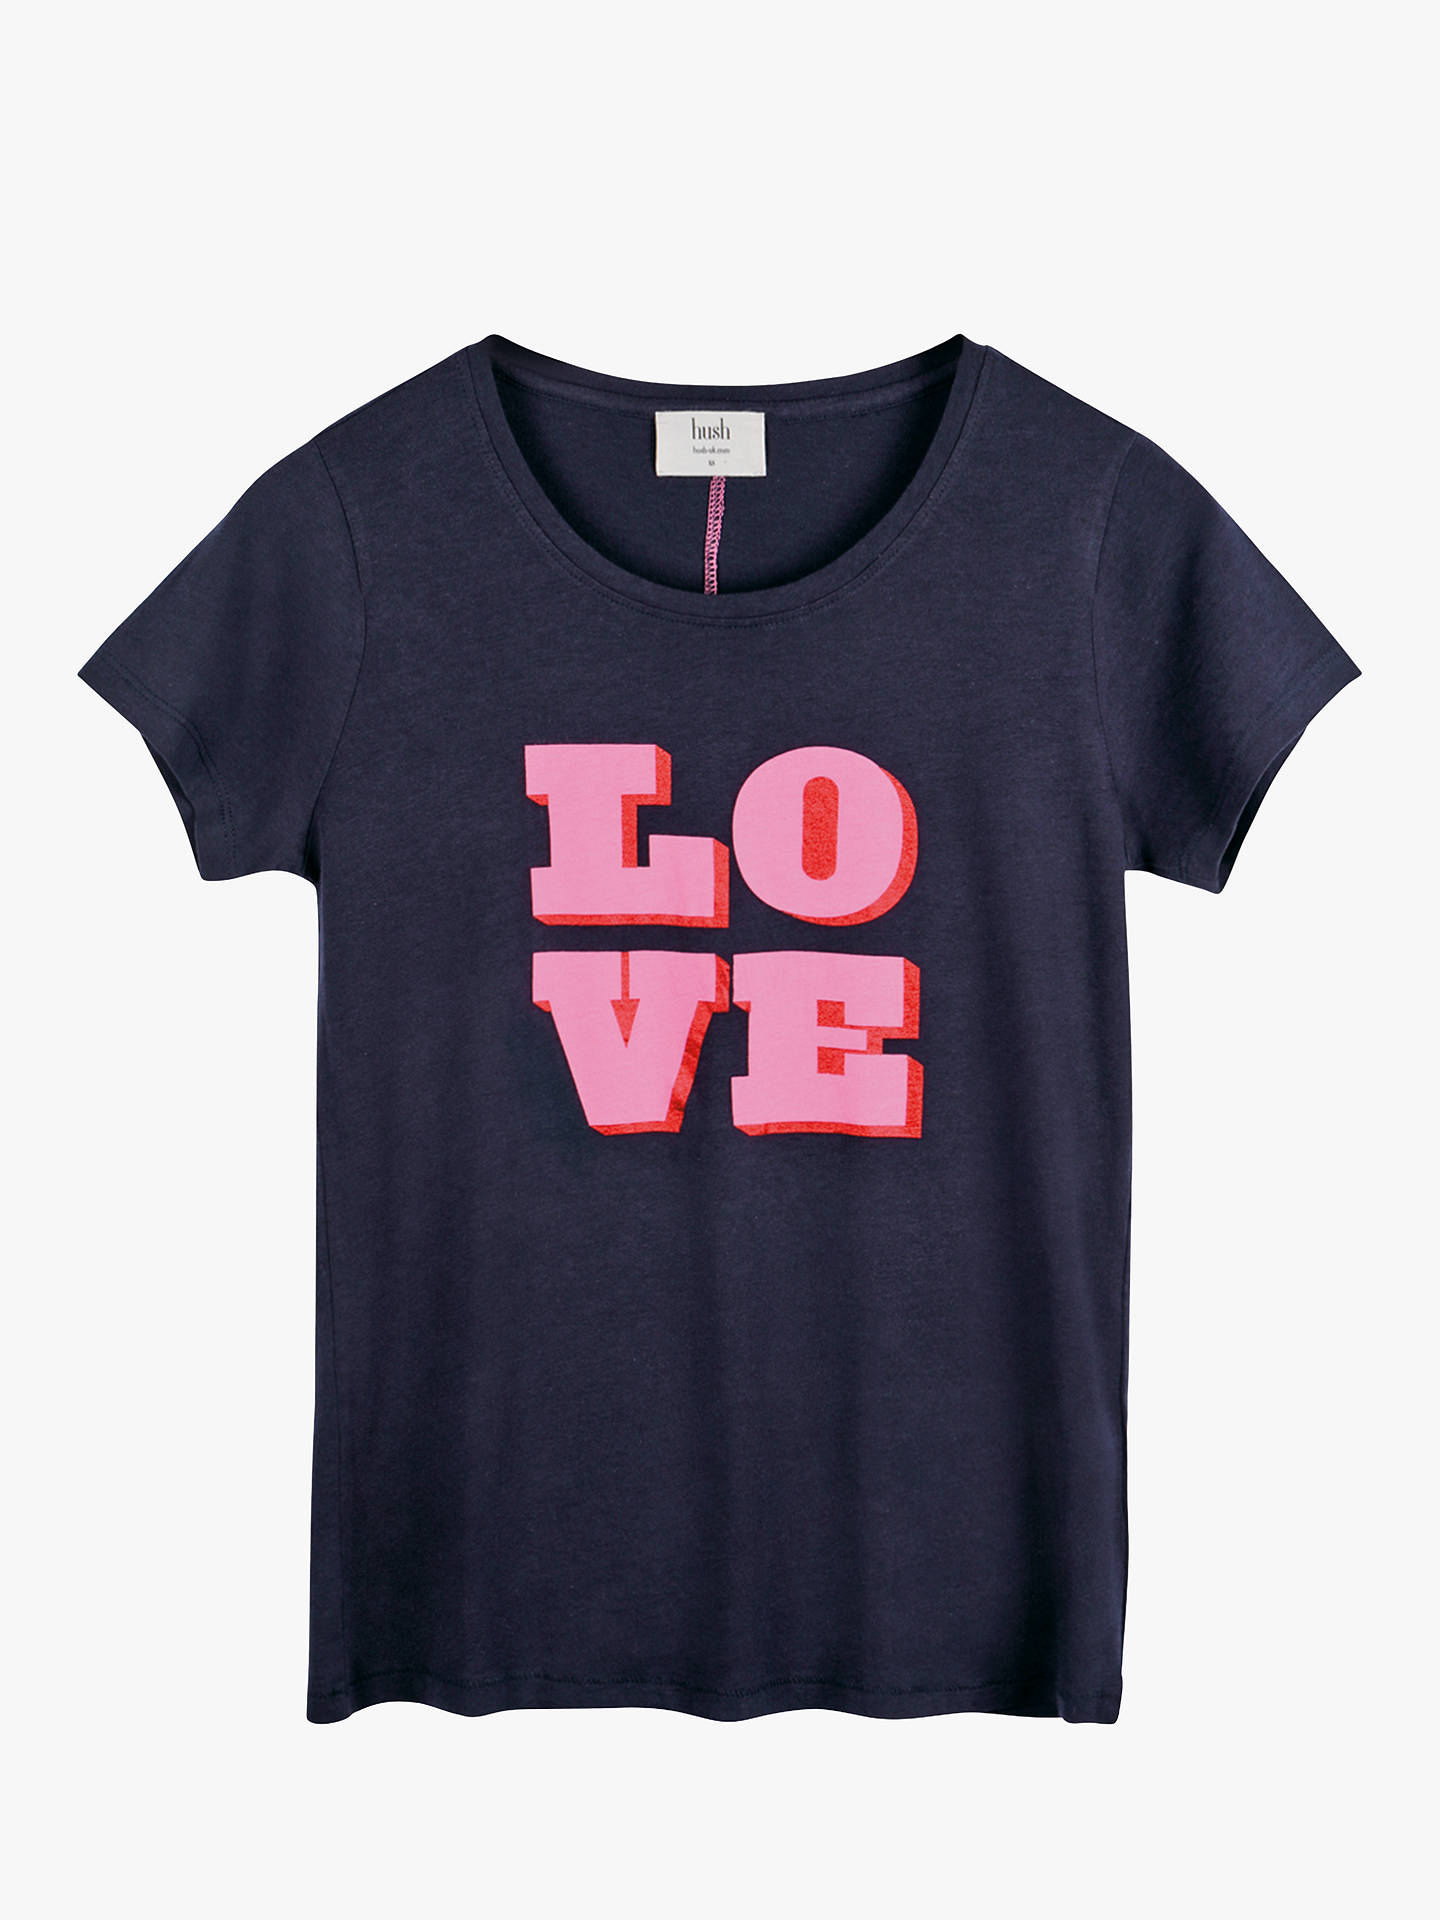 Buyhush Double Love T-Shirt, Midnight/Pink, L Online at johnlewis.com